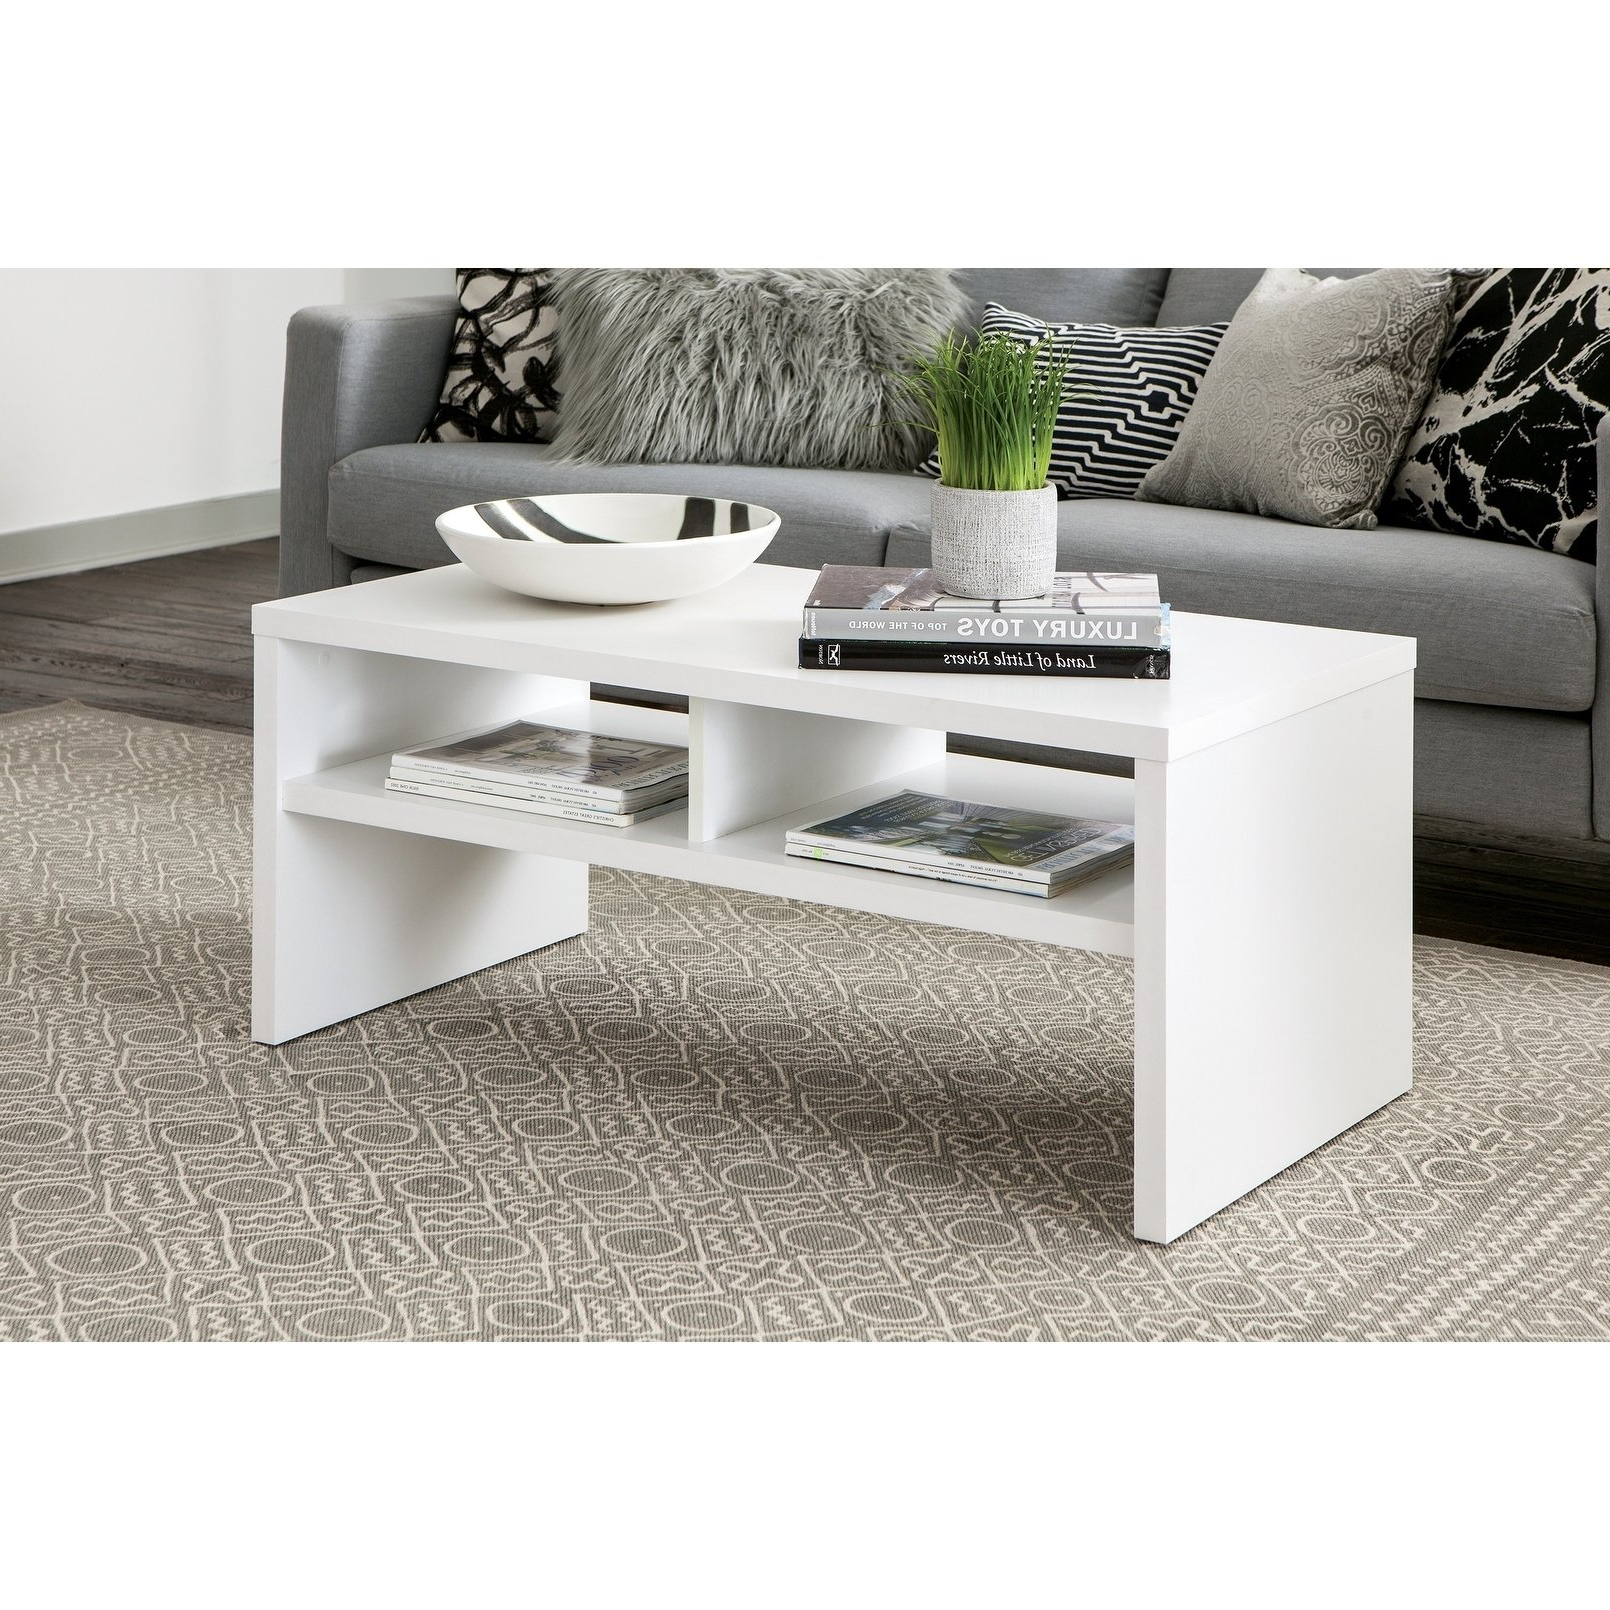 Modular Coffee Tables In Fashionable Shop Closetmaid Modular Coffee Table – Free Shipping Today (View 5 of 20)